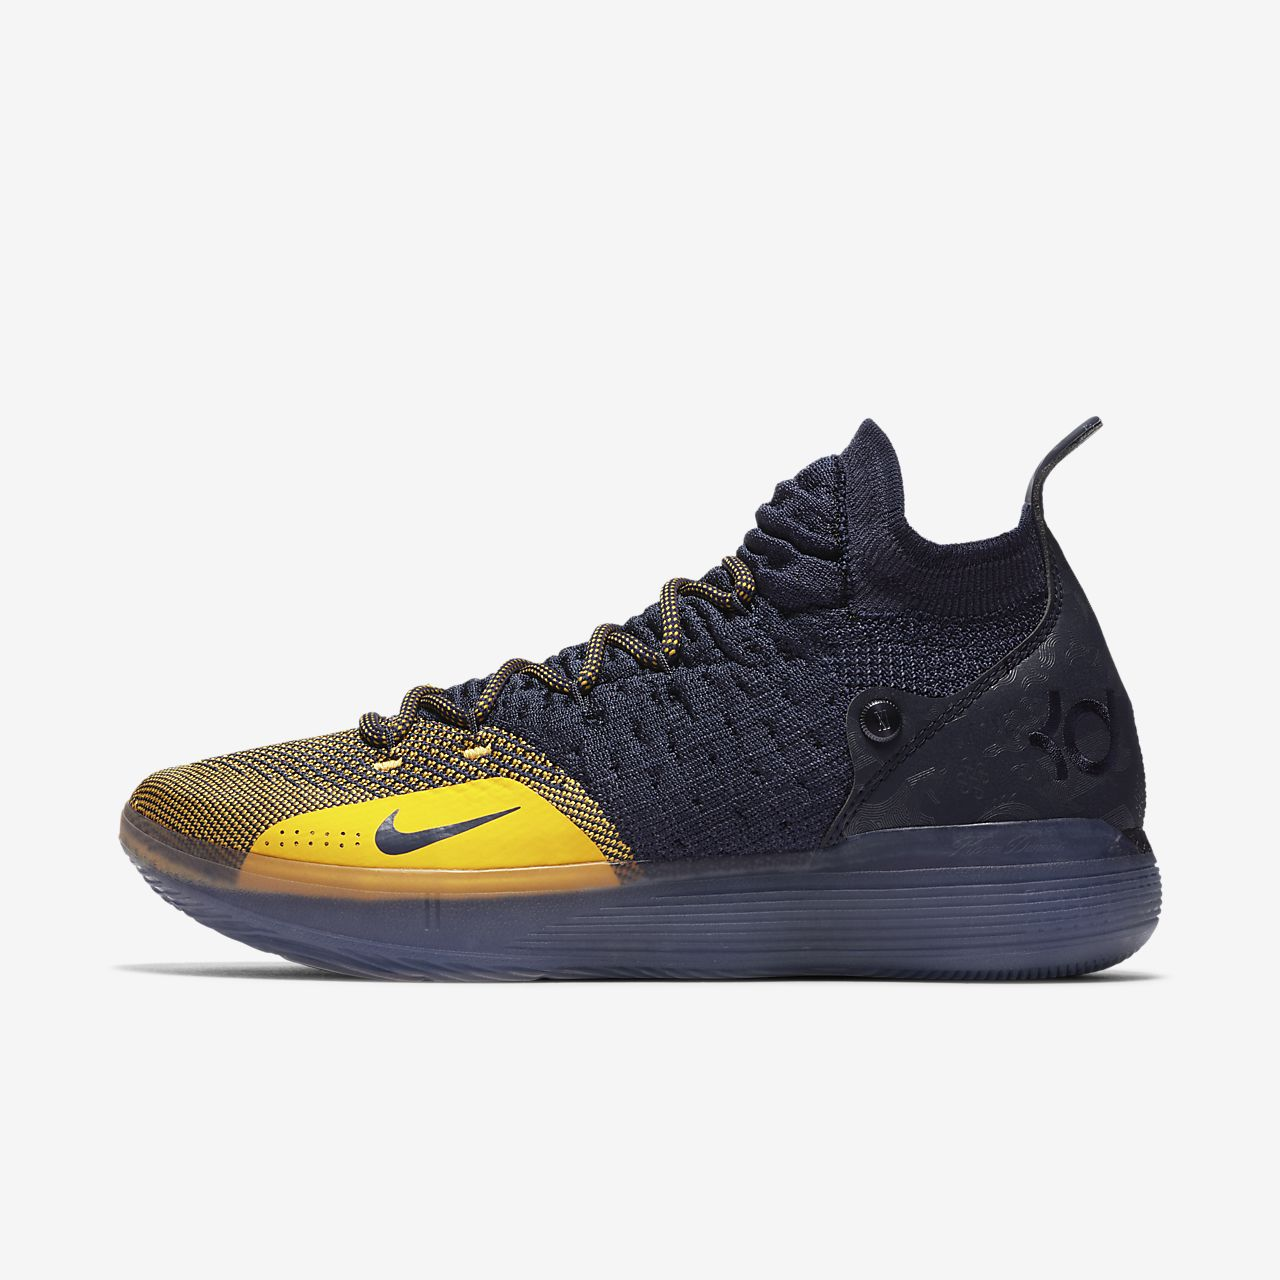 9ec9ad3935d7 Nike Zoom KD11 Basketball Shoe. Nike.com NZ